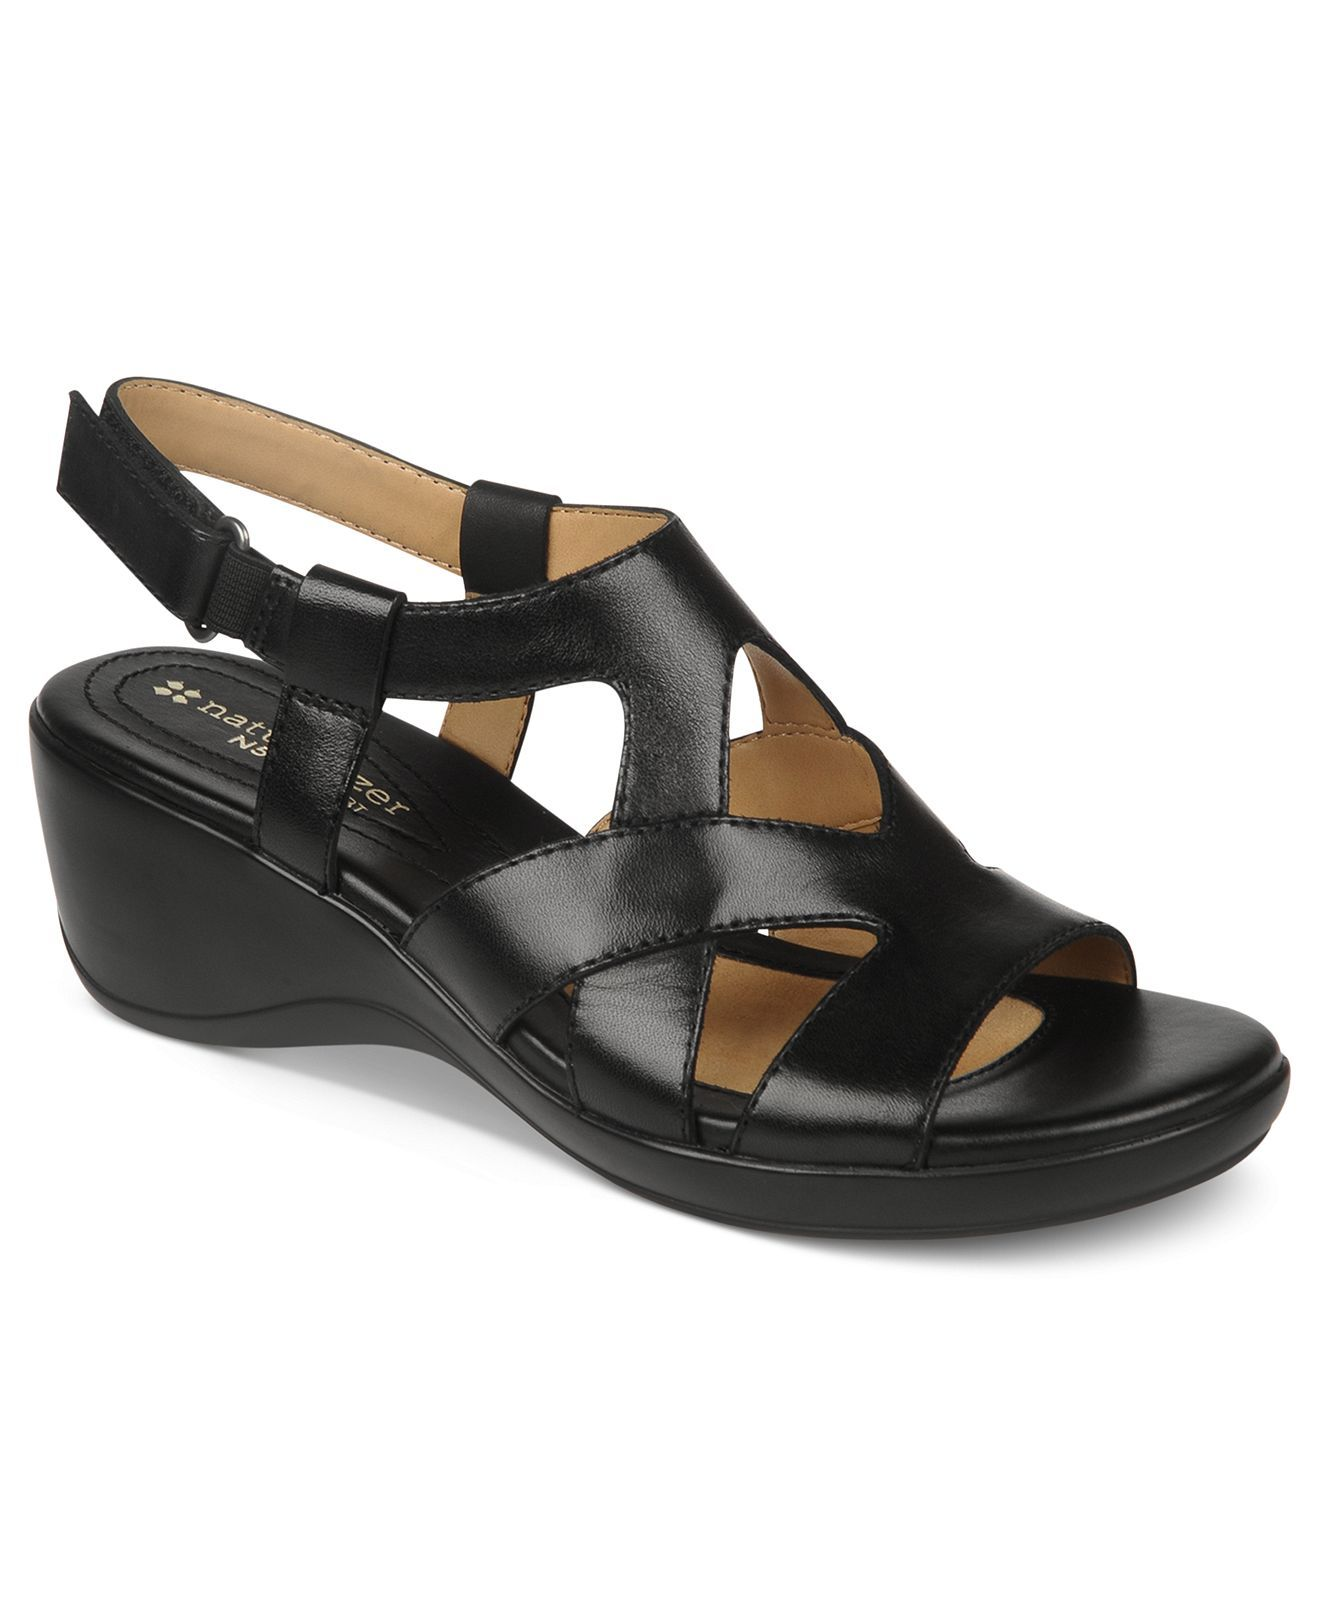 51dd11aa5719 Naturalizer Shoes